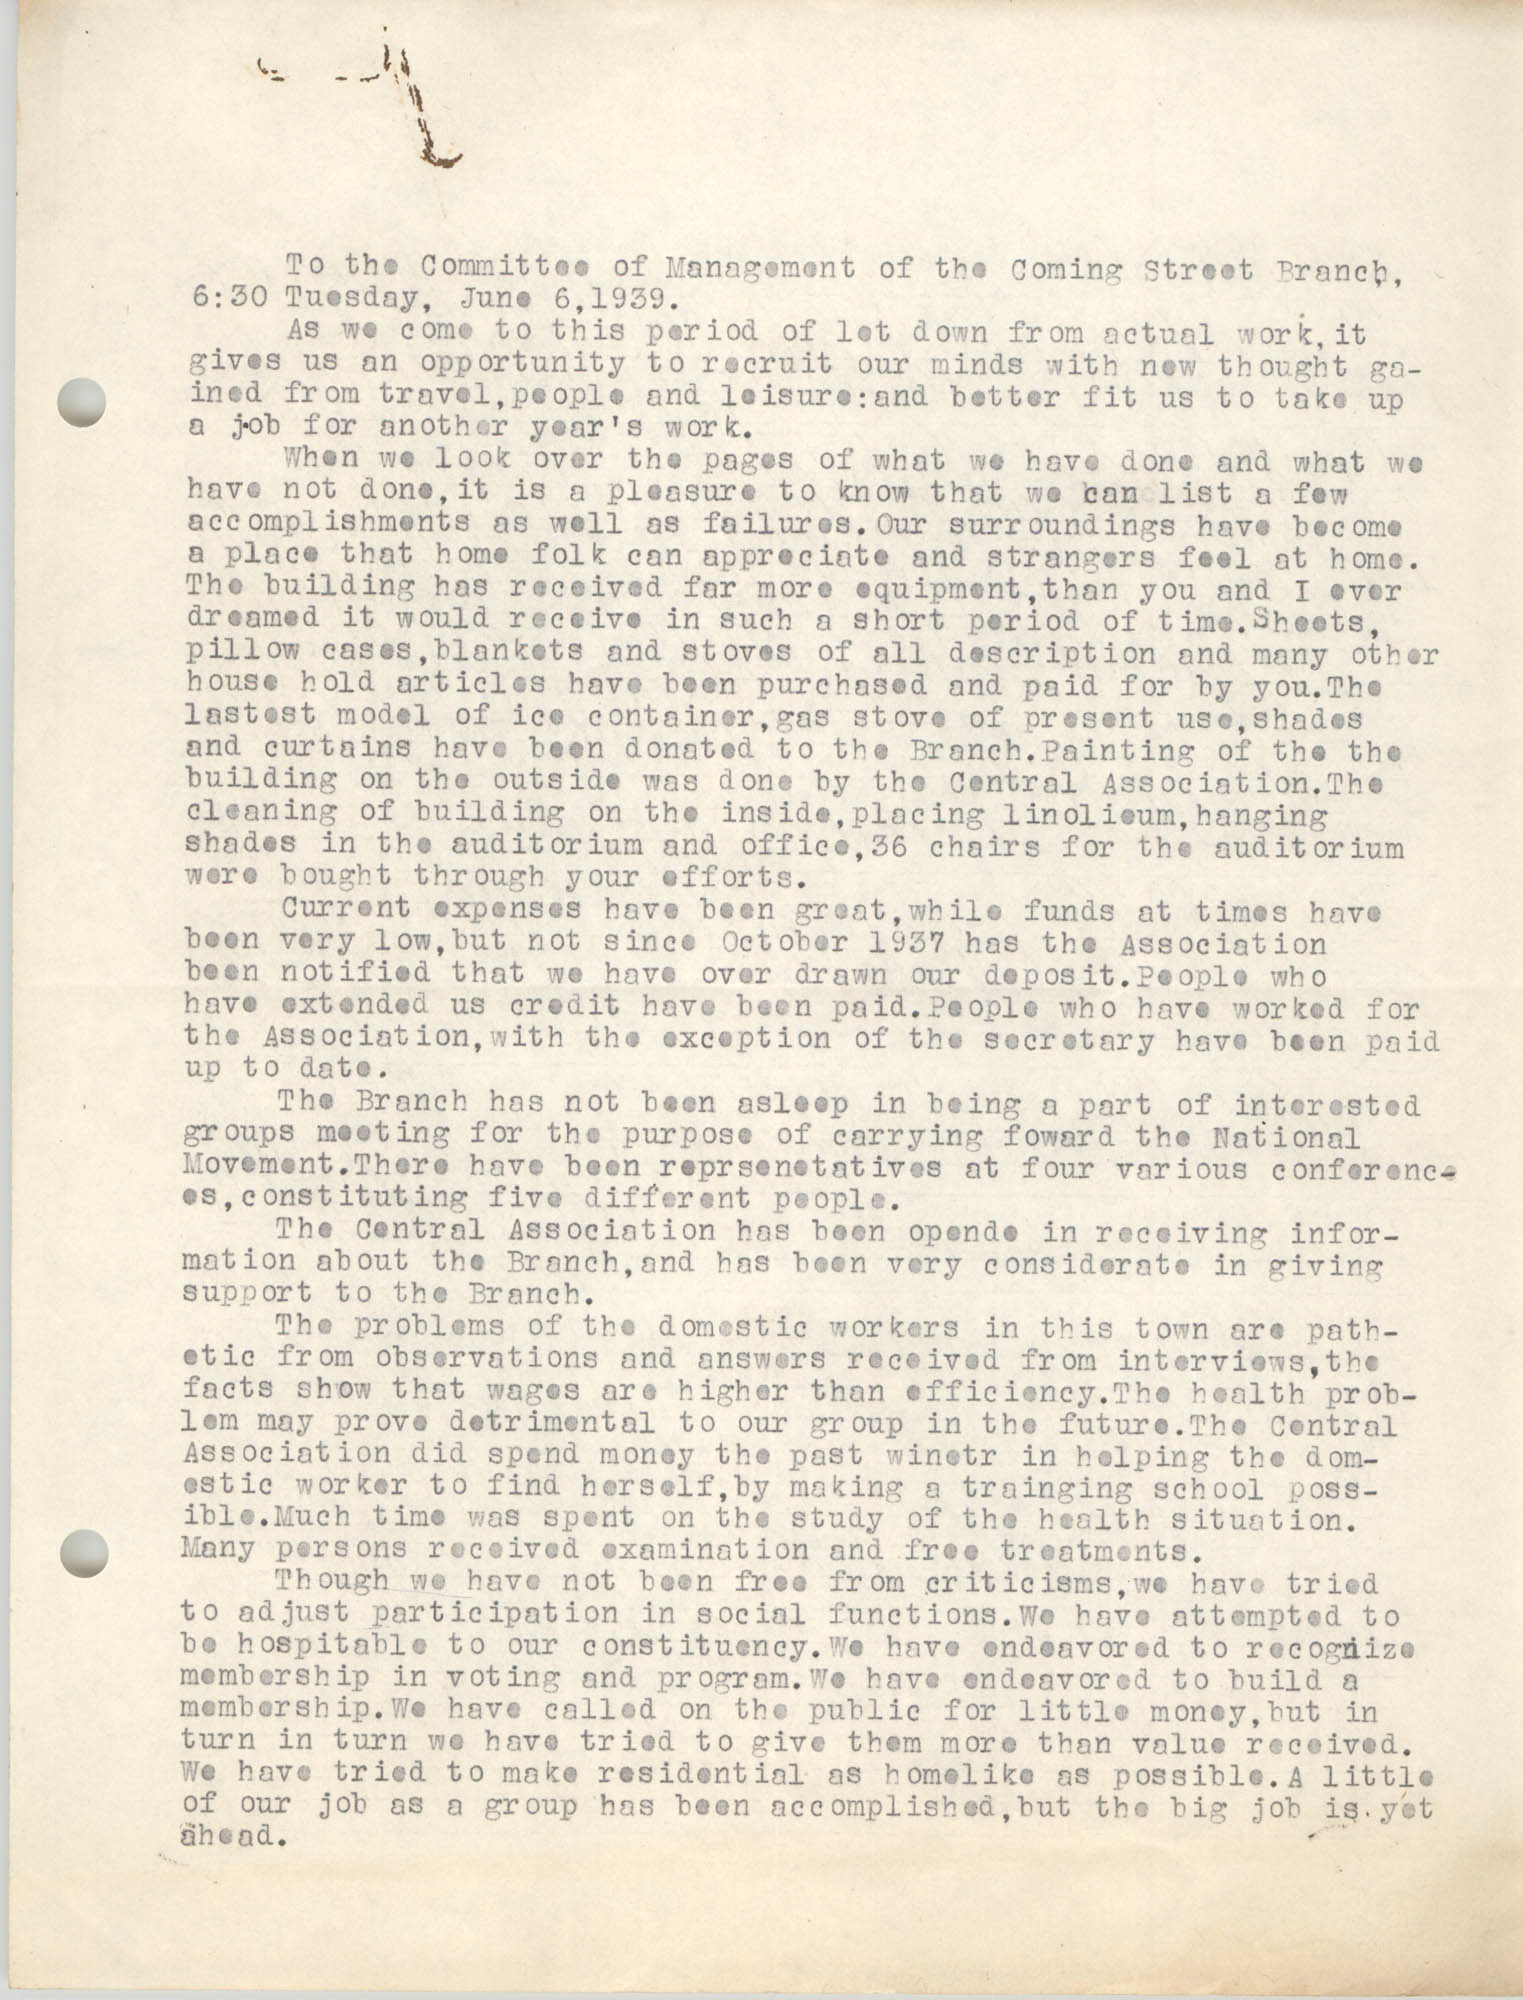 Minutes to the Committee of Management, Coming Street Y.W.C.A., June 6, 1939